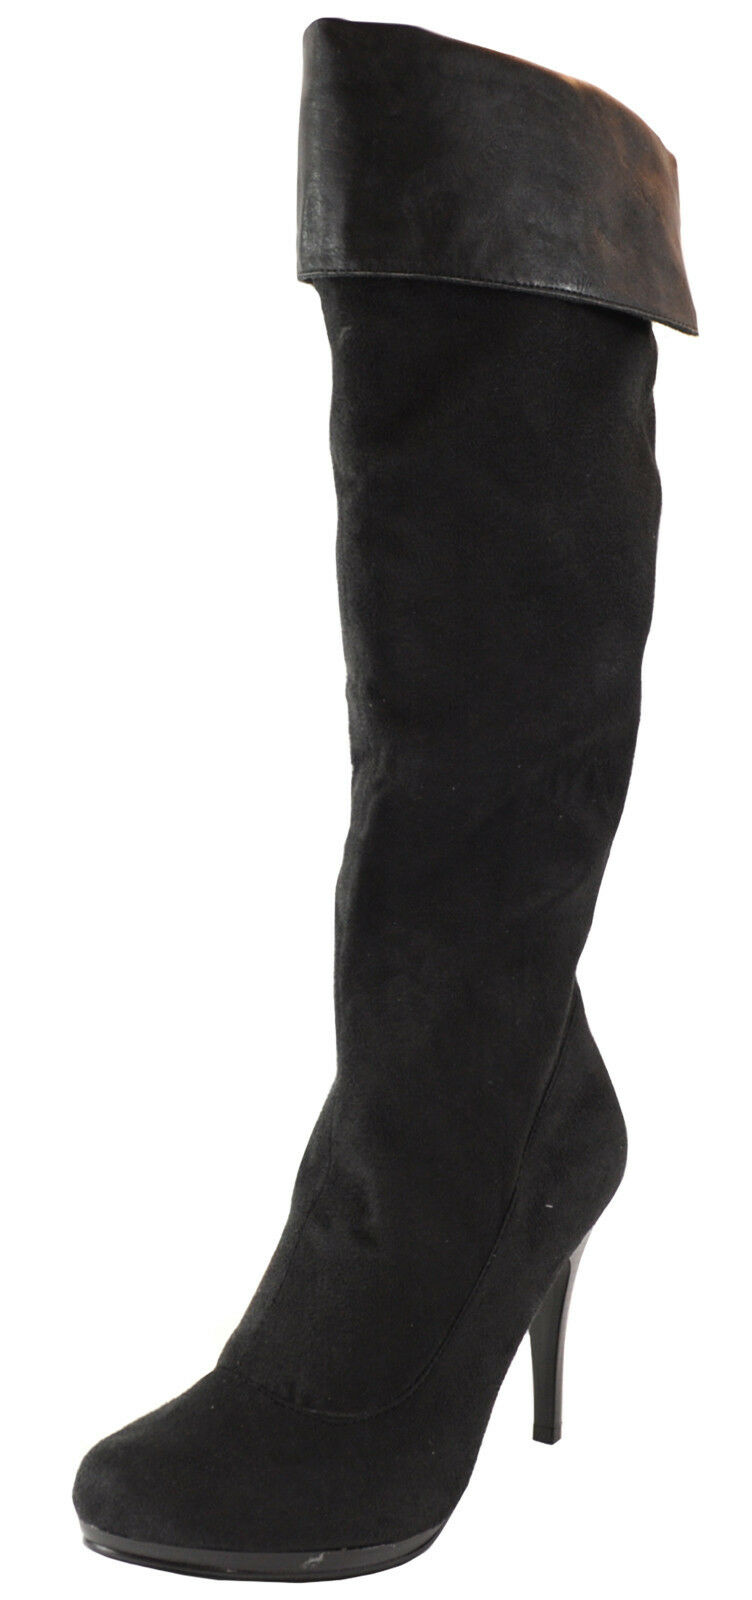 New women's shoes high shaft over the knee boot suede like side zipper black